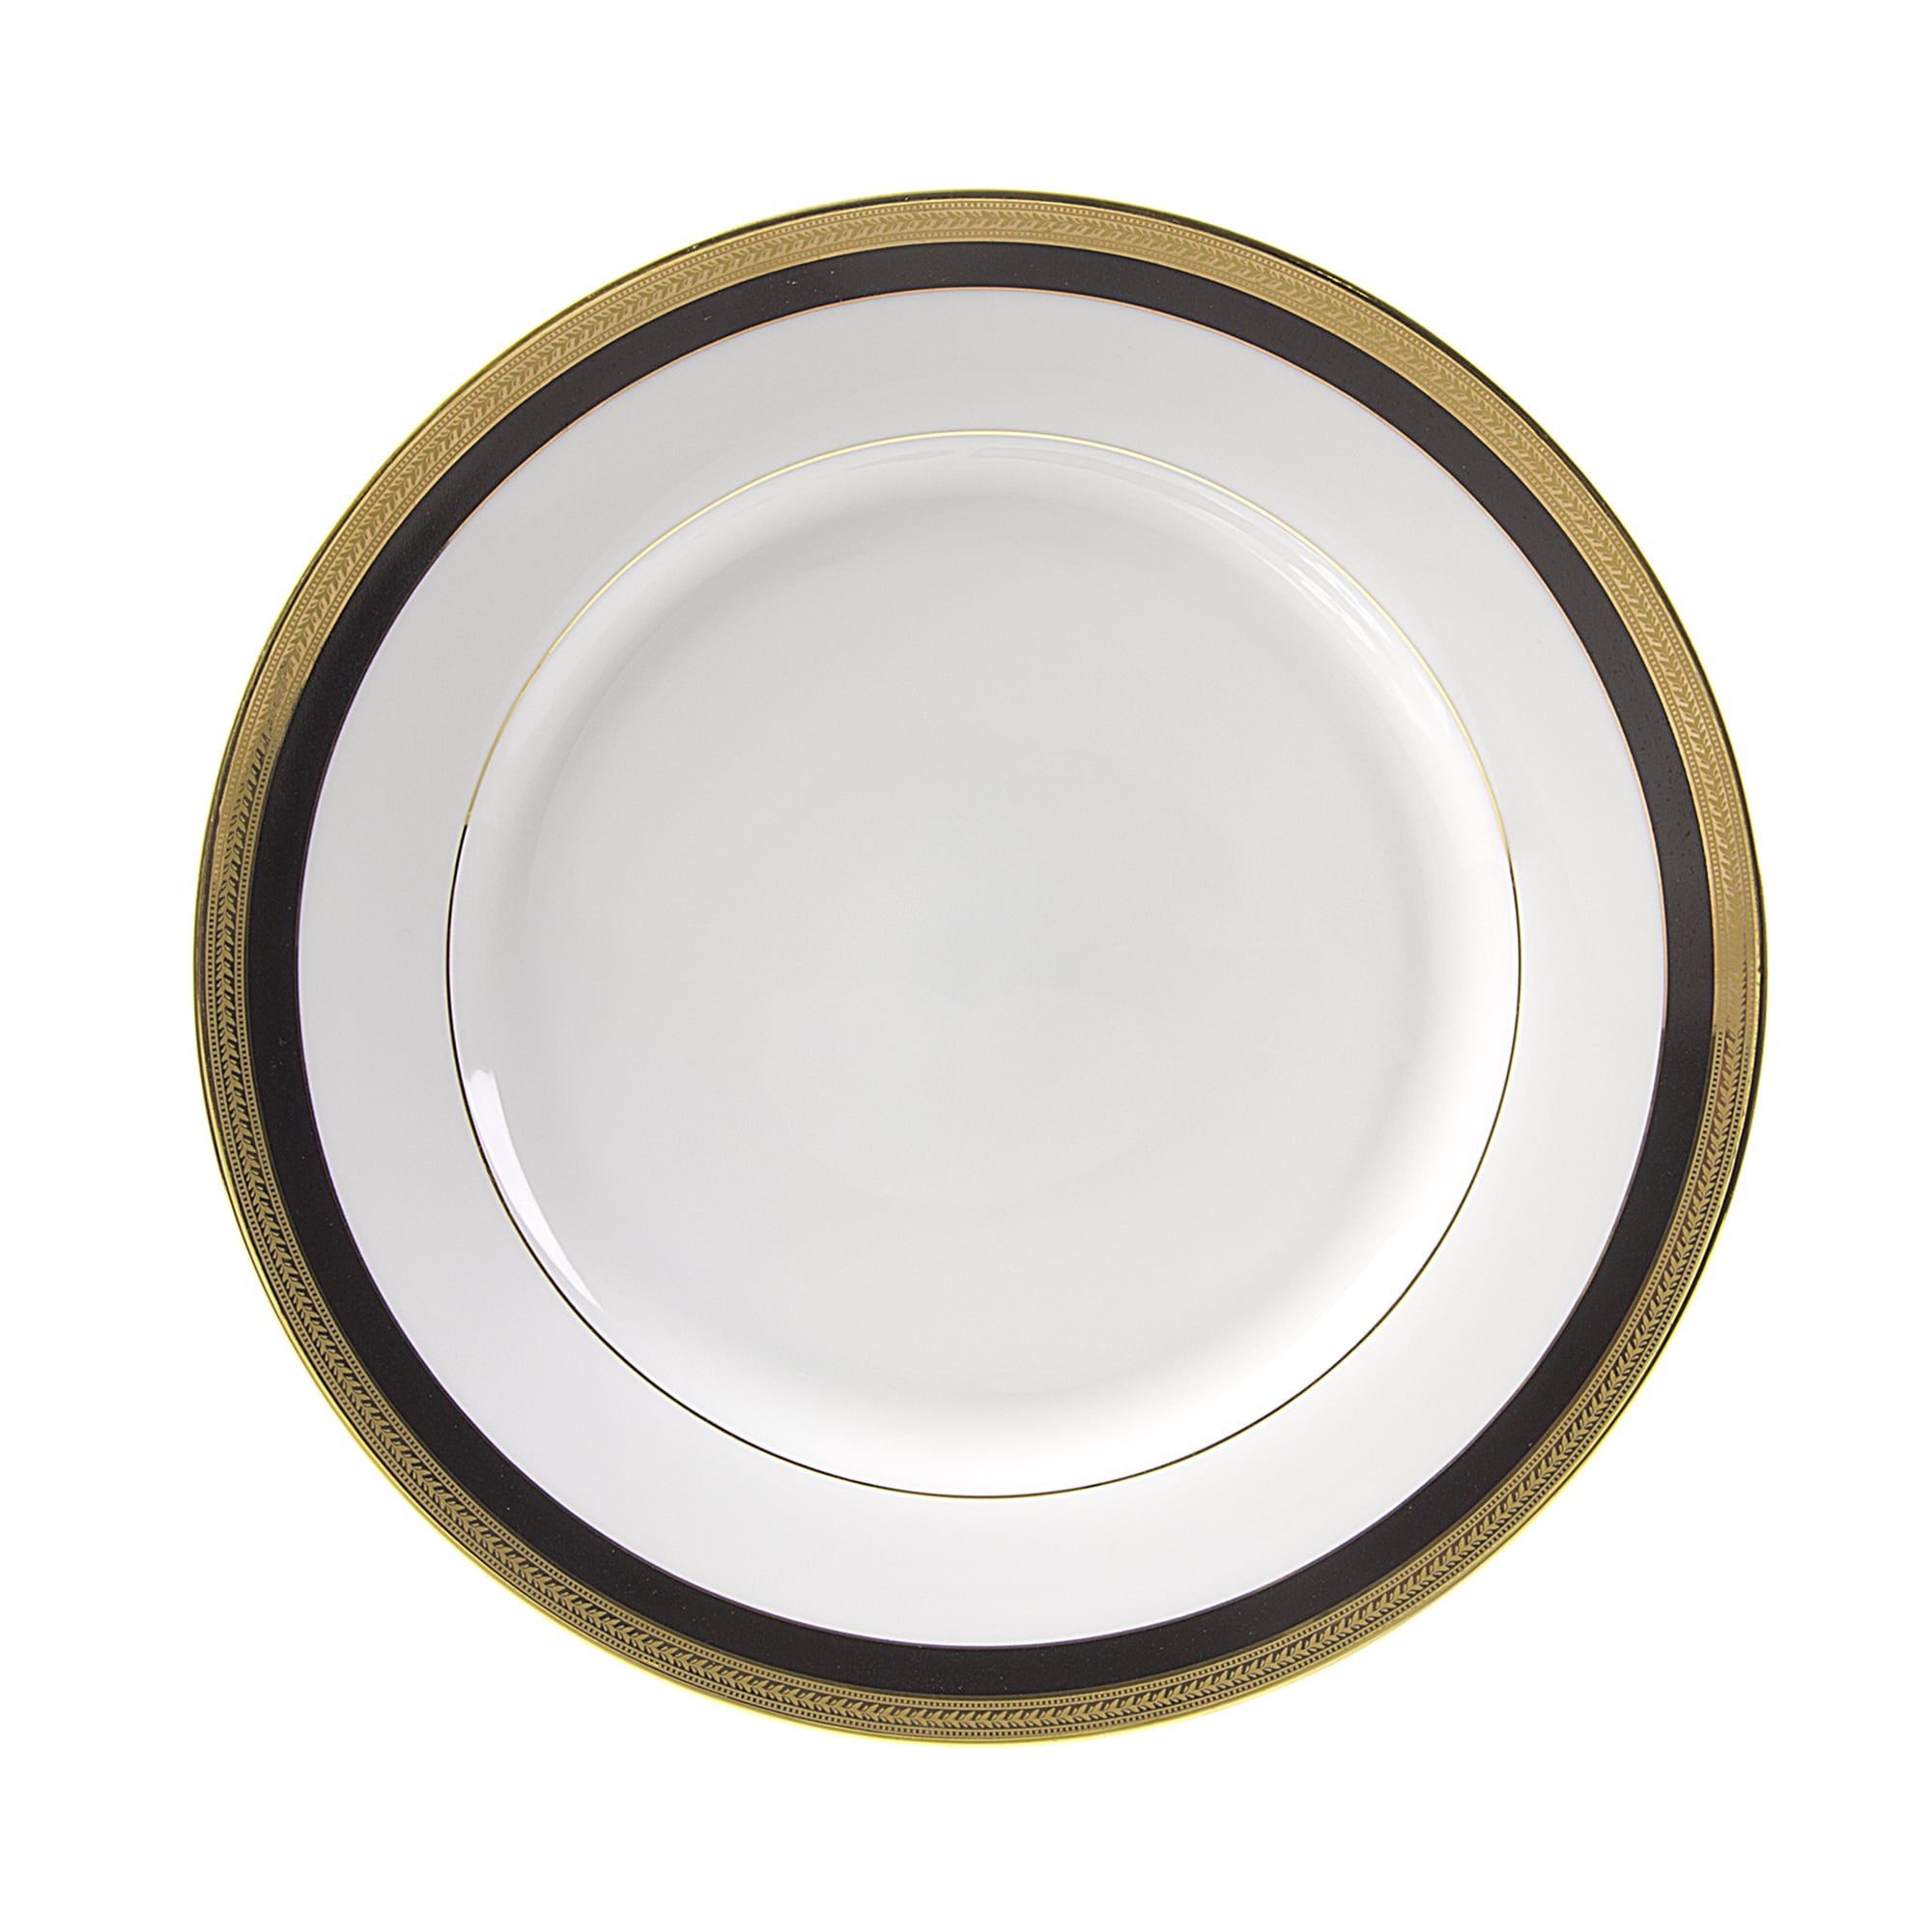 10 Strawberry Street Sahara Black Dinner Plate (Set of 6) - Free Shipping Today - Overstock - 17734032  sc 1 st  Overstock.com & 10 Strawberry Street Sahara Black Dinner Plate (Set of 6) - Free ...